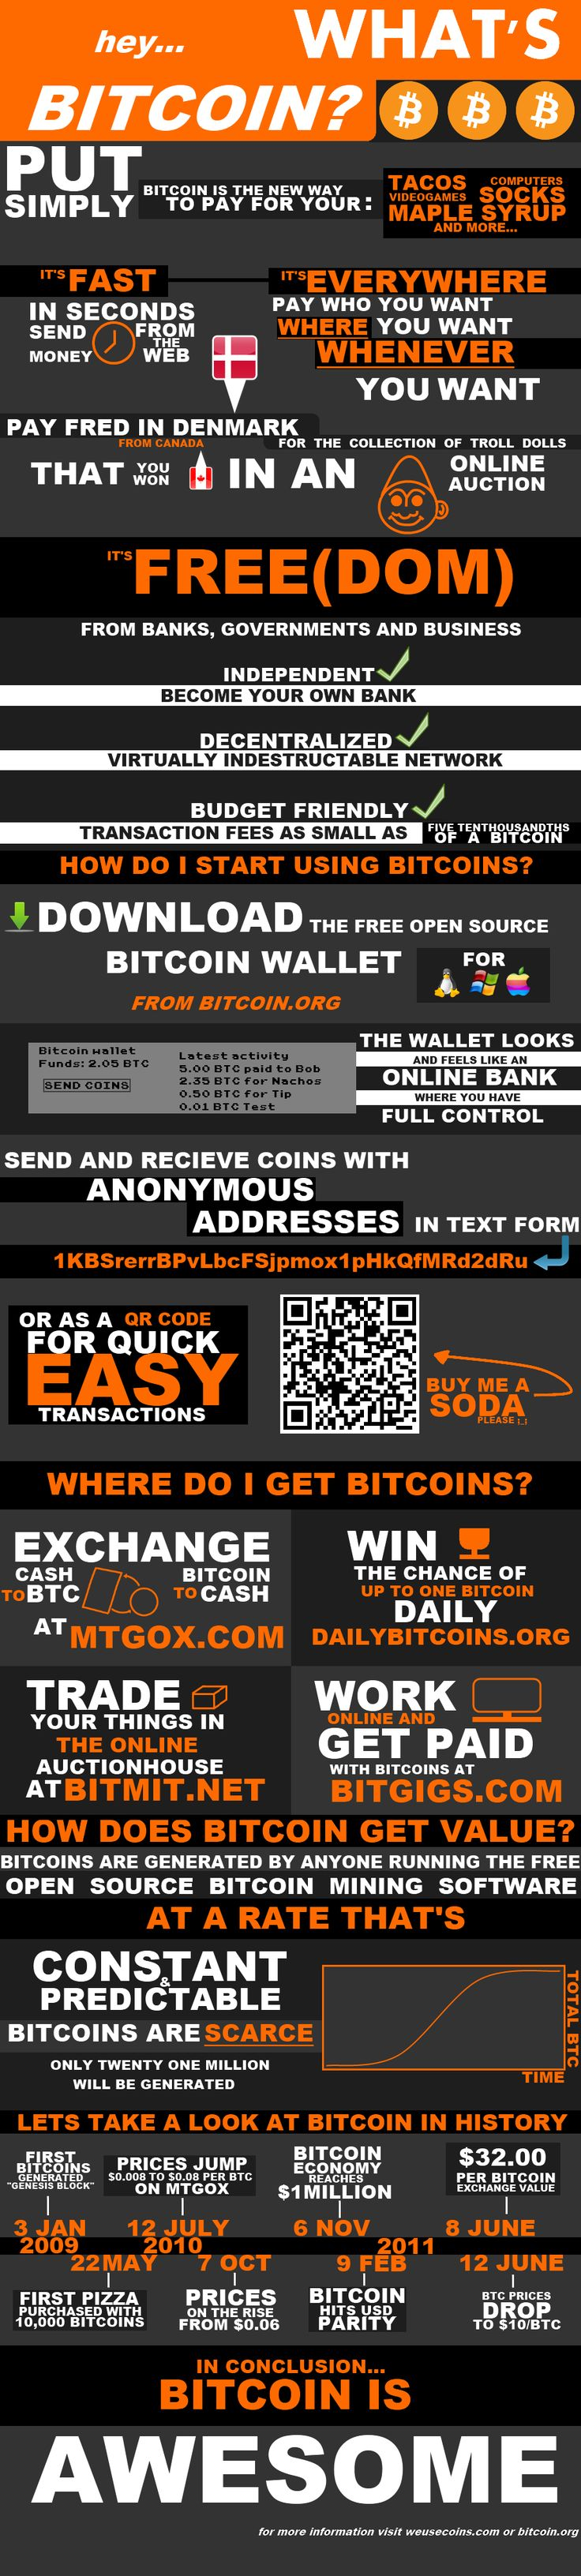 What is #Bitcoin? Awesome!